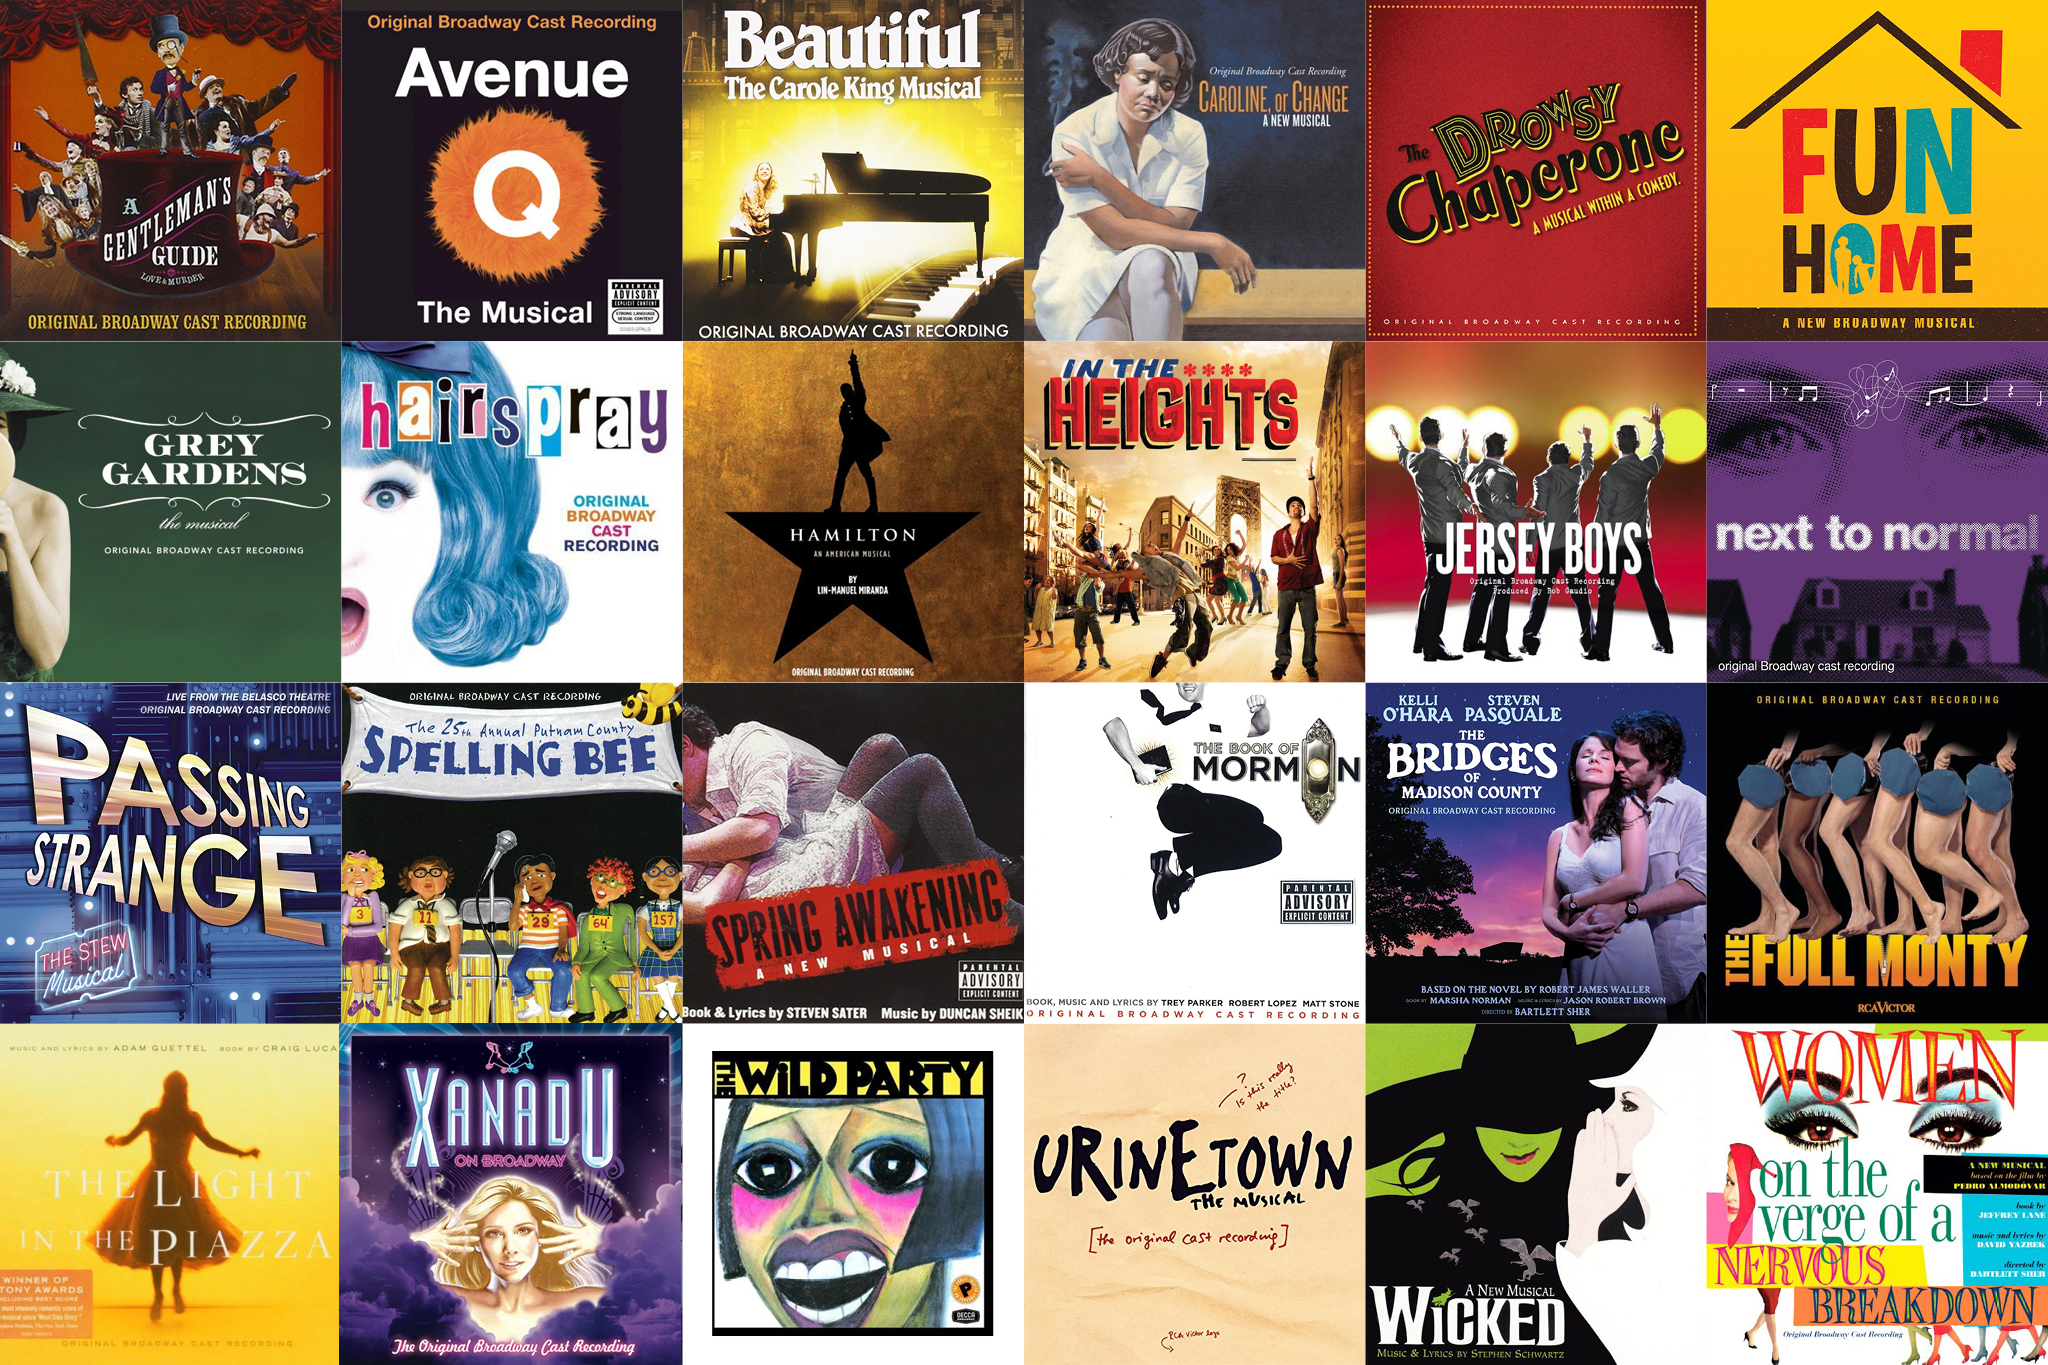 25 best original broadway cast albums of the millennium (so far)